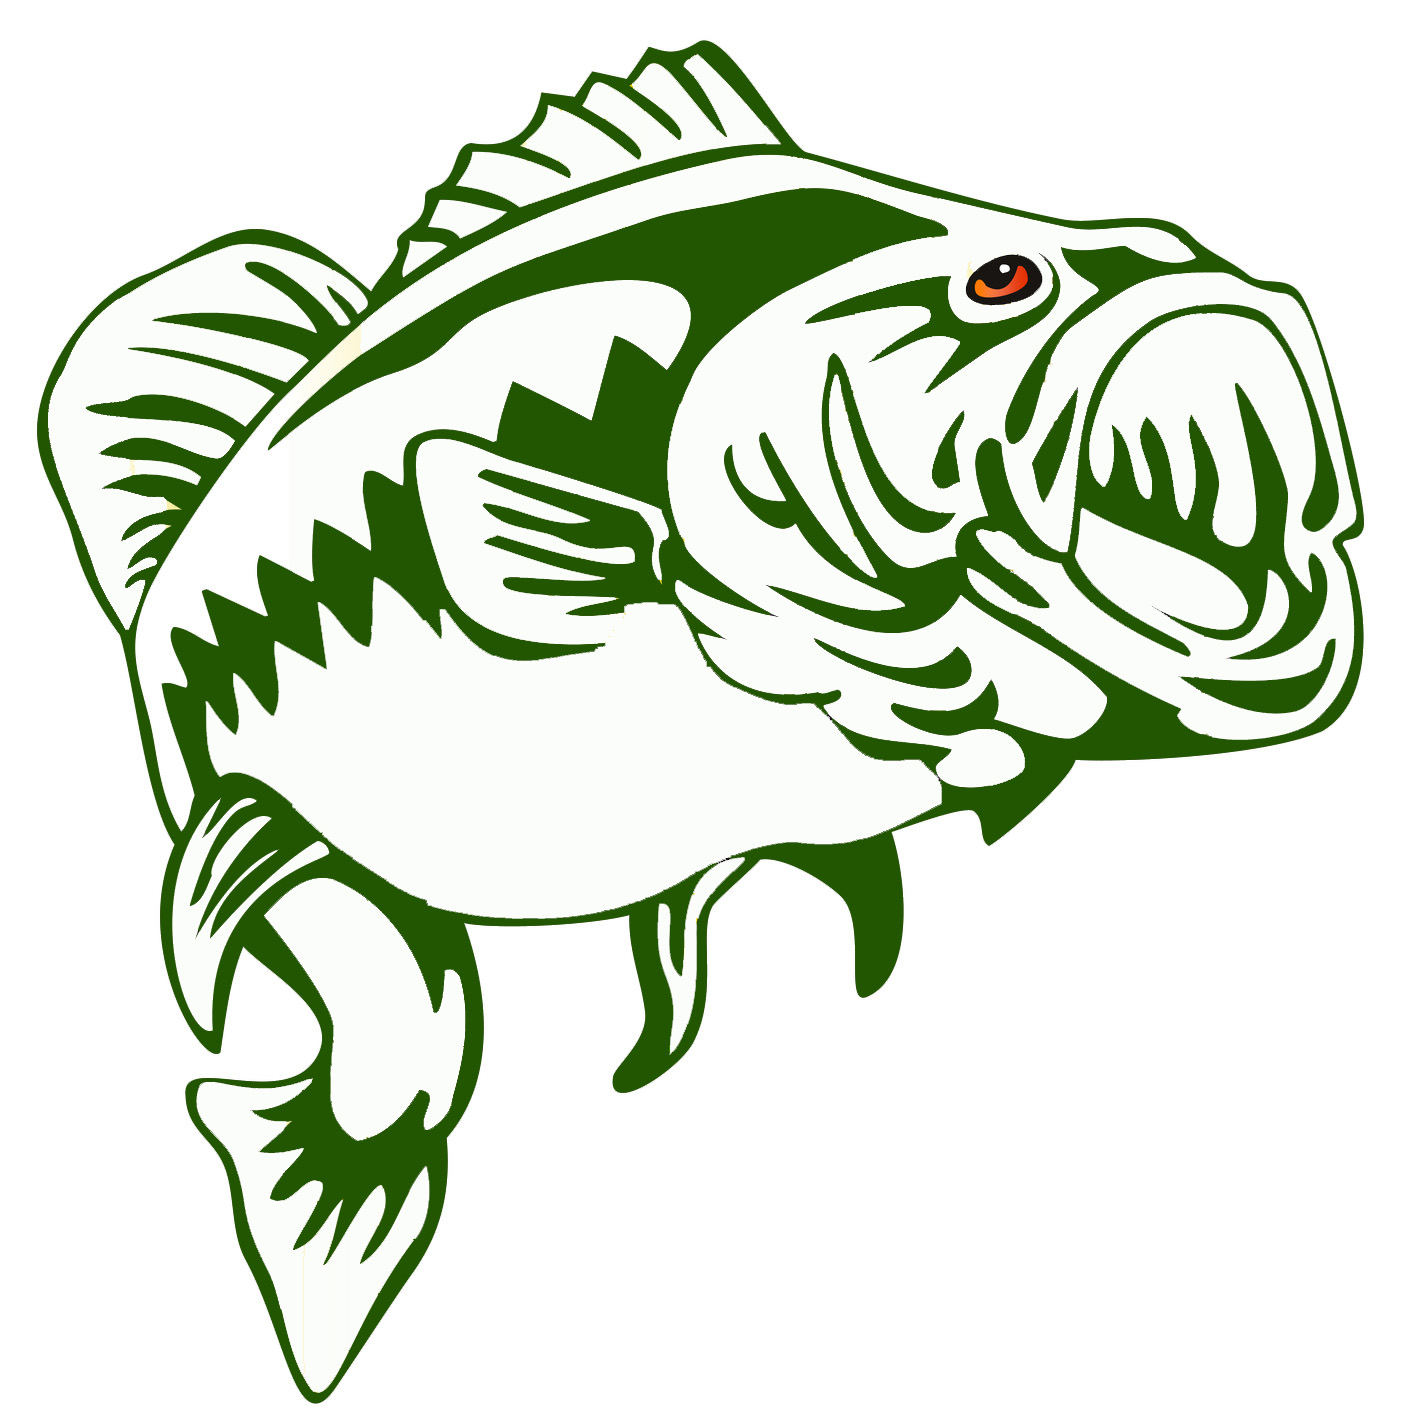 Bass Fish Outline #18241-Bass Fish Outline #18241-3